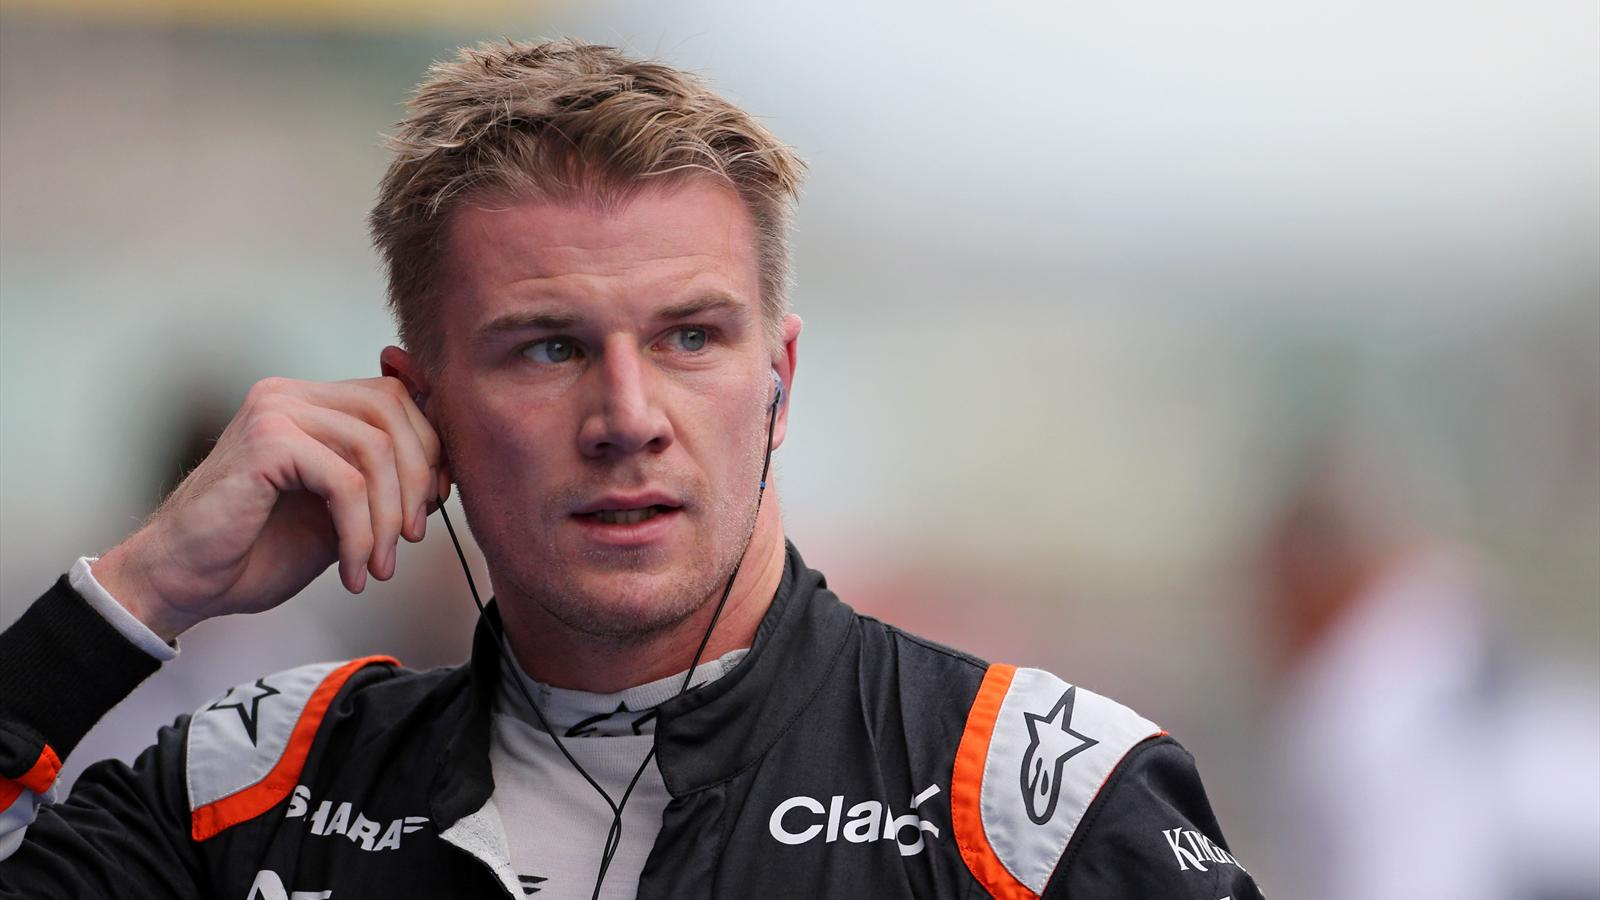 f1 transferts un accord de principe entre nico h lkenberg et renault saison 2017 formule. Black Bedroom Furniture Sets. Home Design Ideas